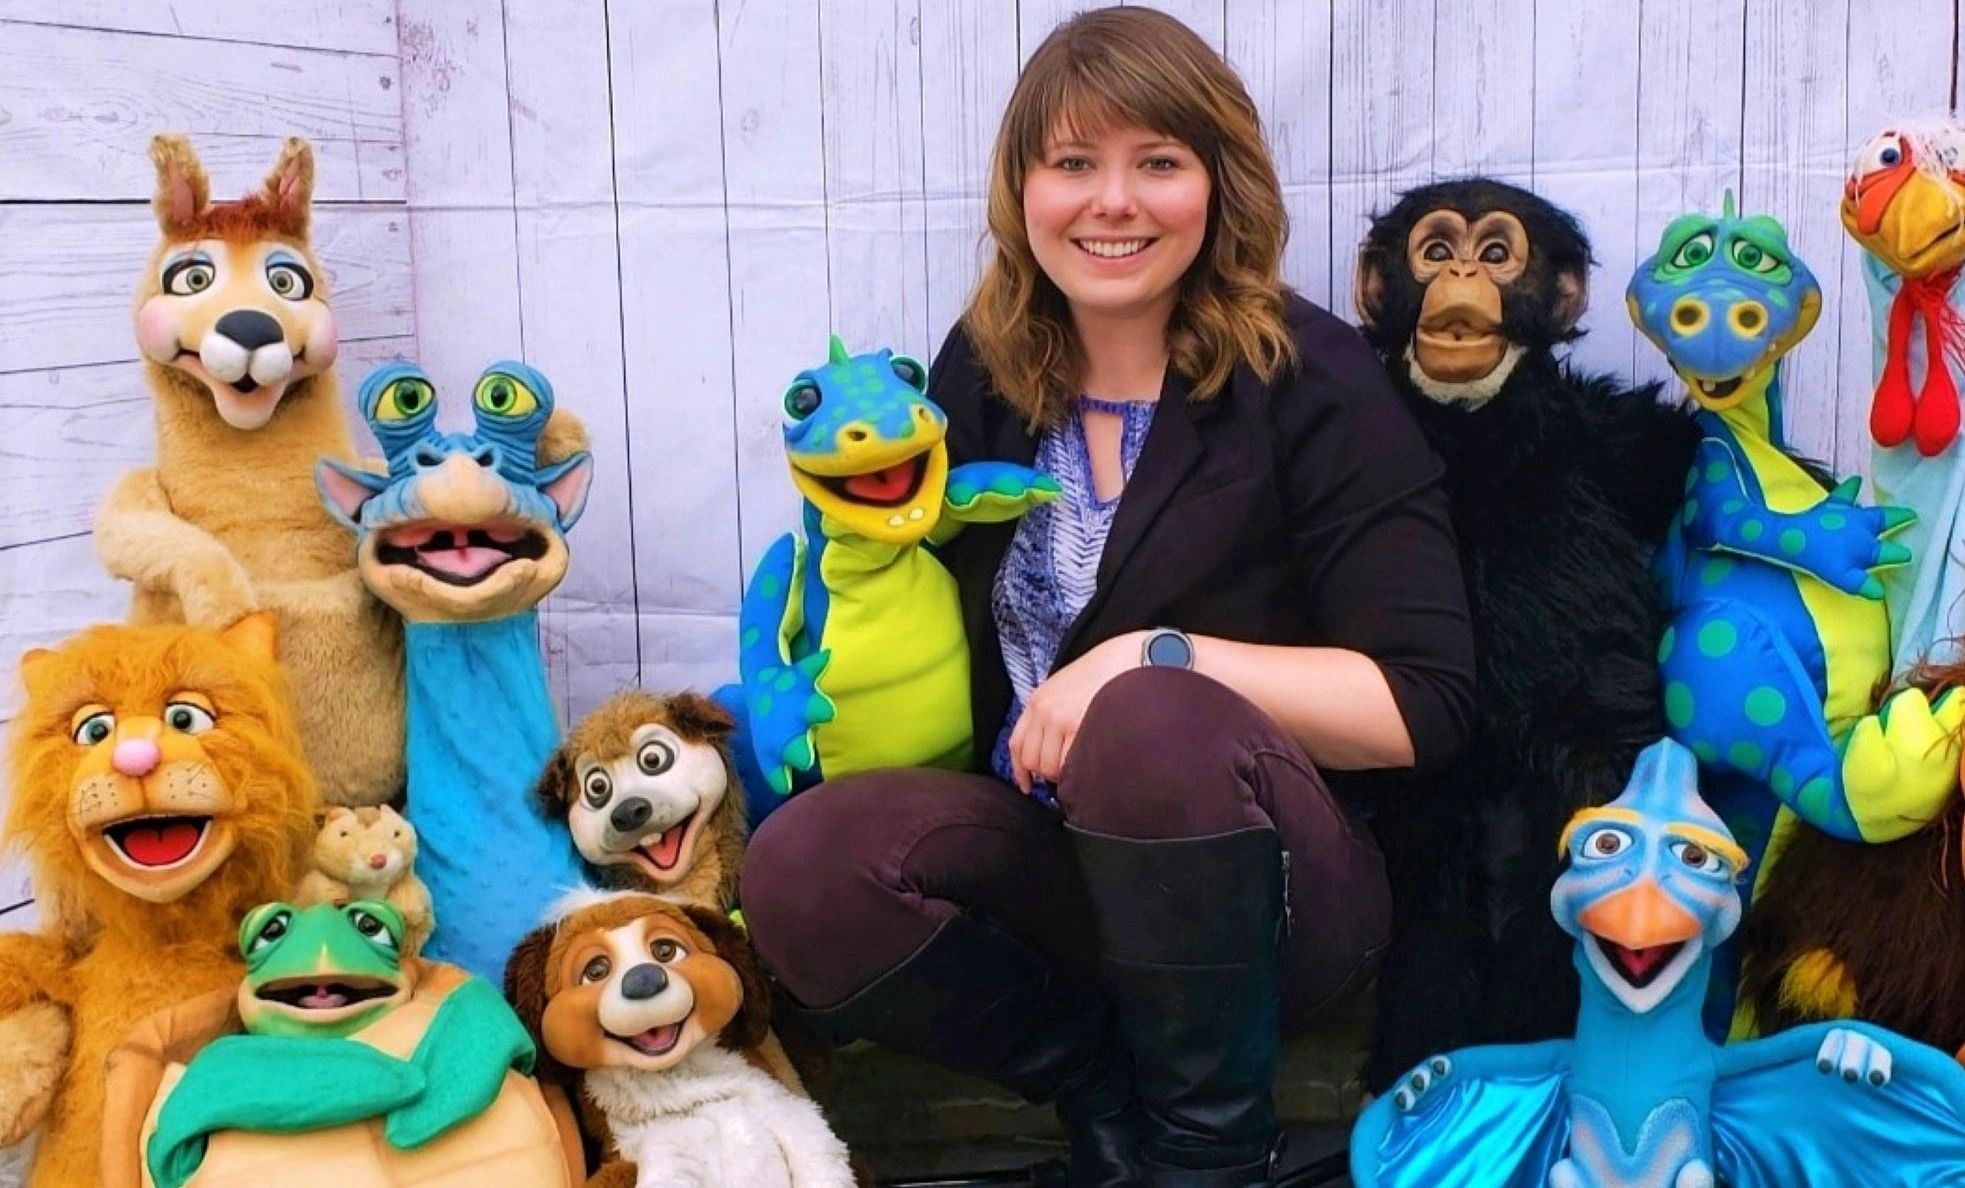 Ventriloquist, Meghan Casey surrounded by her puppets